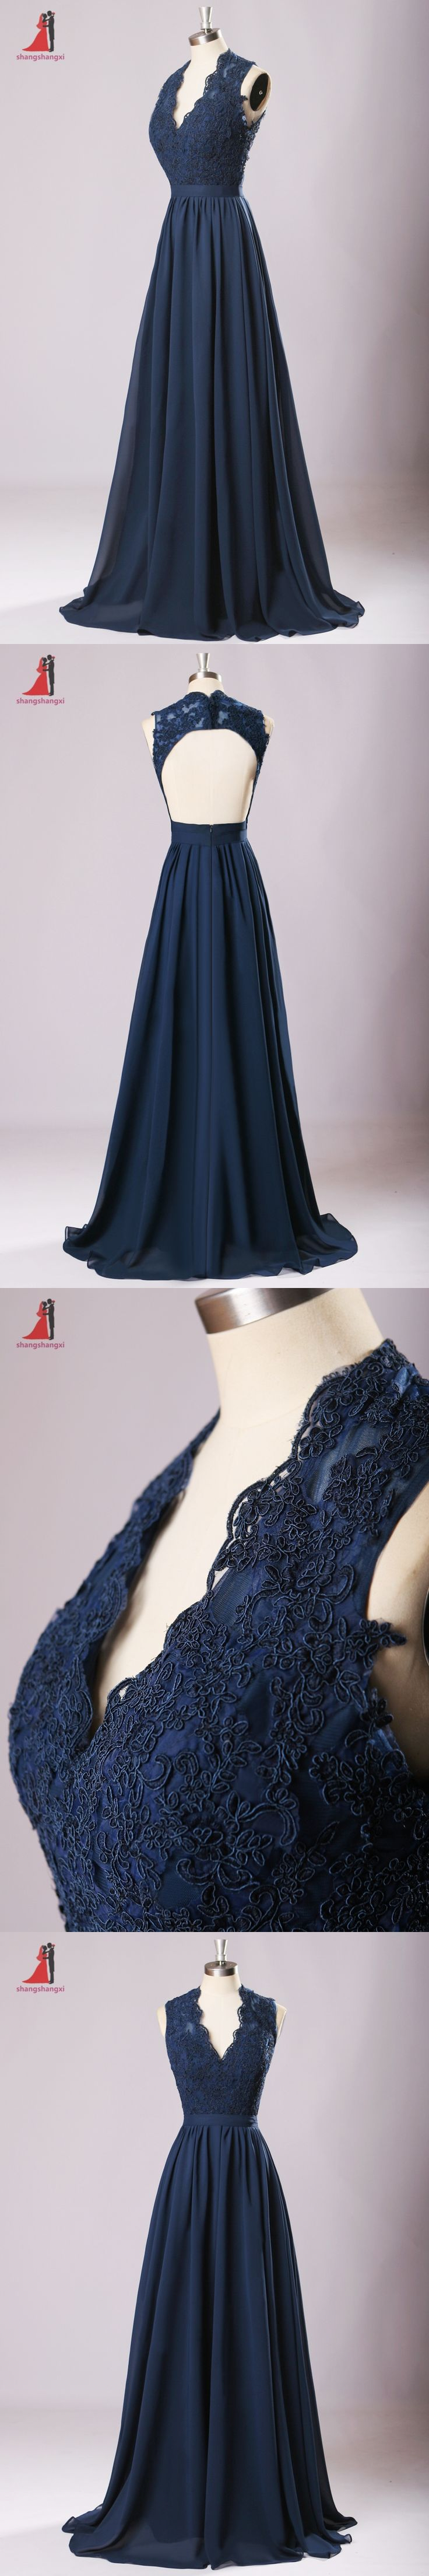 2017 Navy Blue Long Bridesmaid Dresses V-neck Lace Appliques Chiffon Backless Dress for Wedding Party Prom vestido de noche